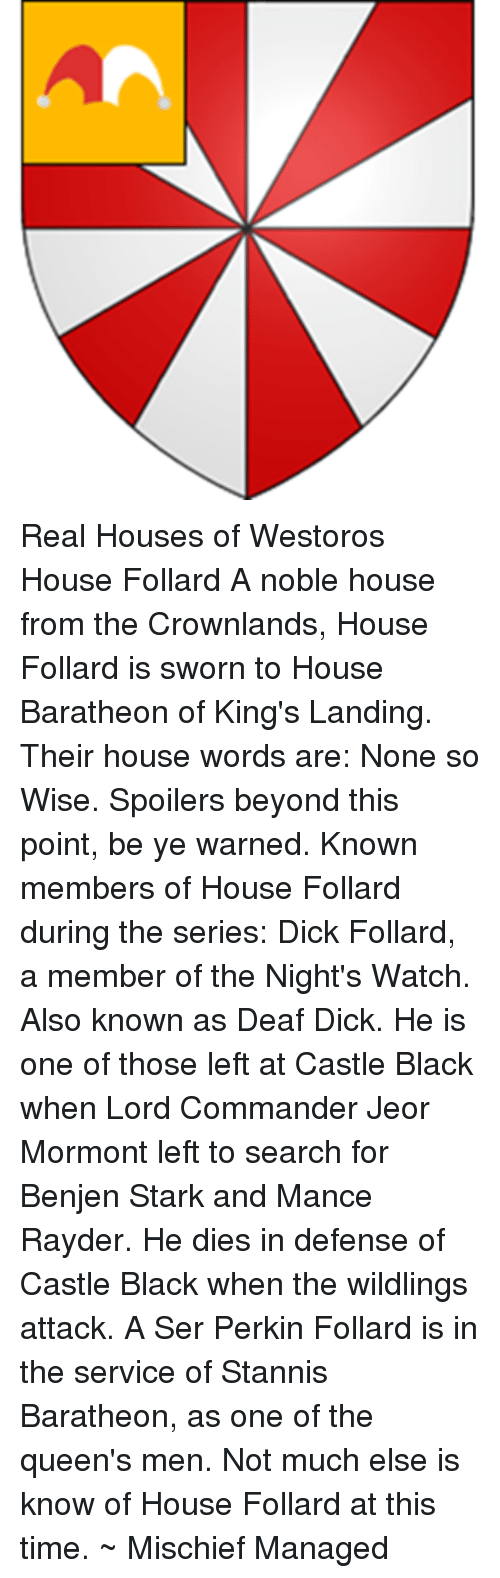 Memes, Black, and House: Real Houses of Westoros House Follard   A noble house from the Crownlands, House Follard is sworn to House Baratheon of King's Landing.   Their house words are: None so Wise.   Spoilers beyond this point, be ye warned.  Known members of House Follard during the series:   Dick Follard, a member of the Night's Watch. Also known as Deaf Dick. He is one of those left at Castle Black when Lord Commander Jeor Mormont left to search for Benjen Stark and Mance Rayder. He dies in defense of Castle Black when the wildlings attack.   A Ser Perkin Follard is in the service of Stannis Baratheon, as one of the queen's men.   Not much else is know of House Follard at this time.   ~ Mischief Managed